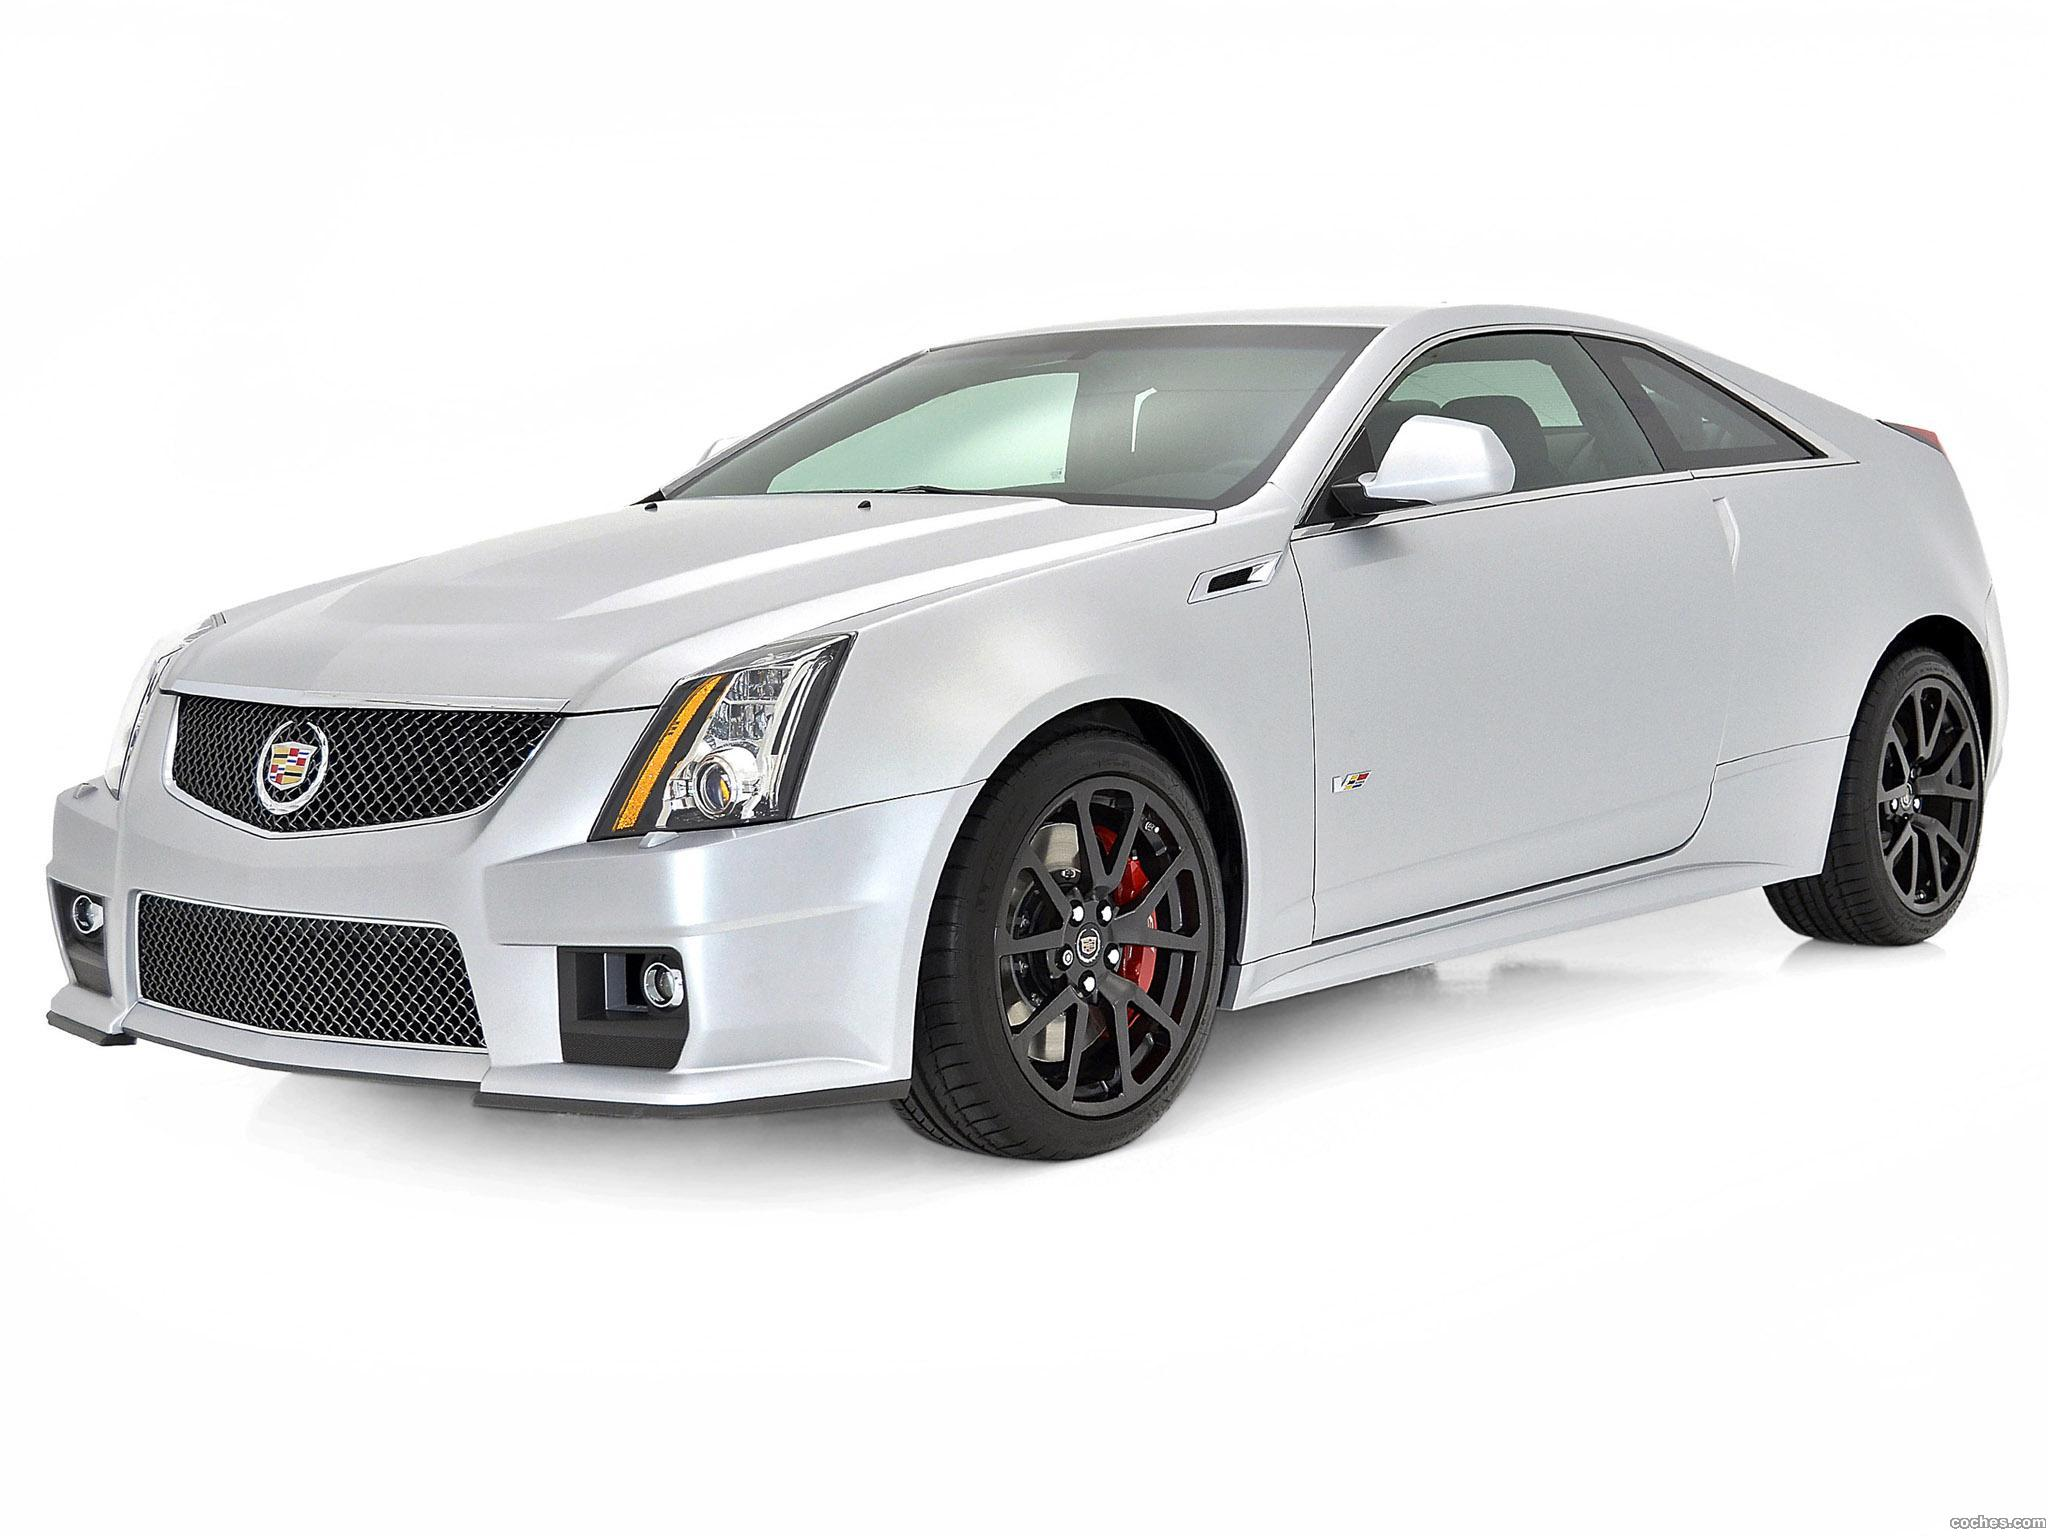 Foto 0 de Cadillac CTS-V Coupe Silver Frost Edition 2013